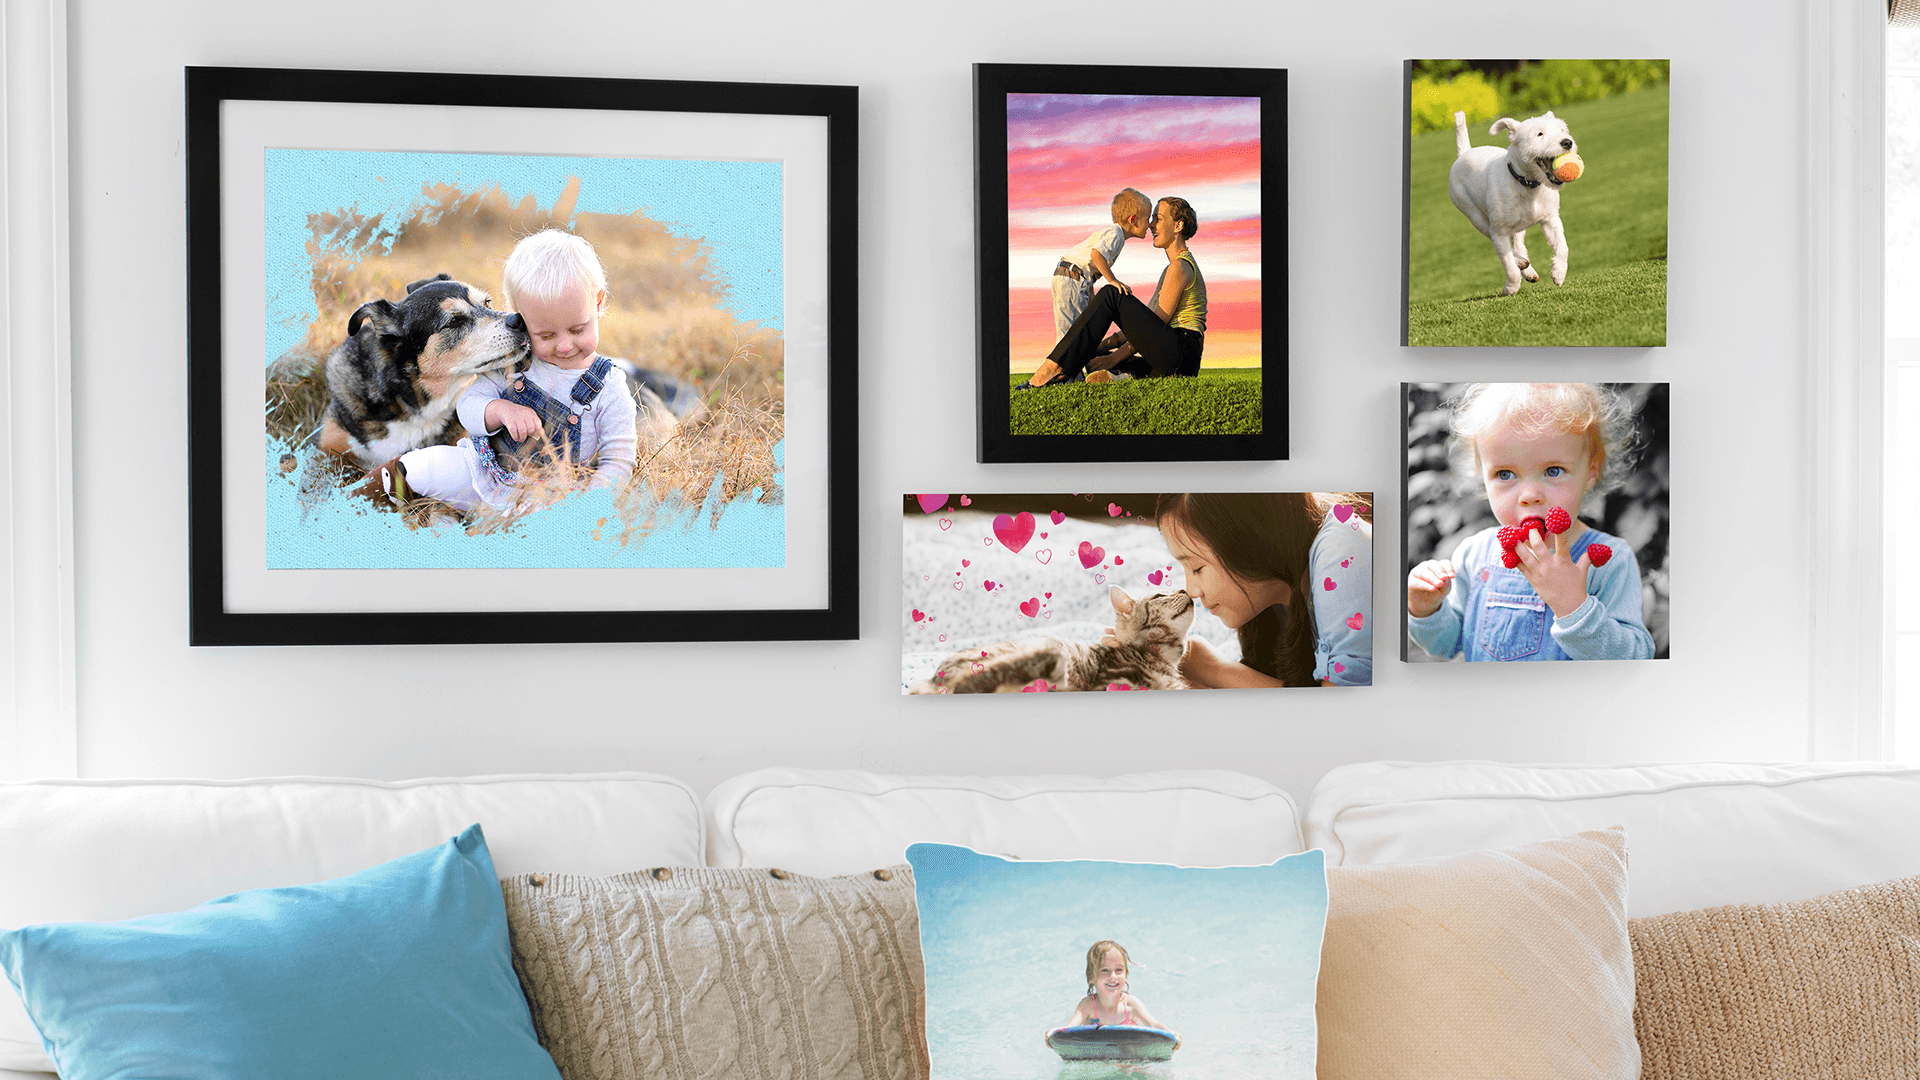 Order photo prints, gifts, and gear